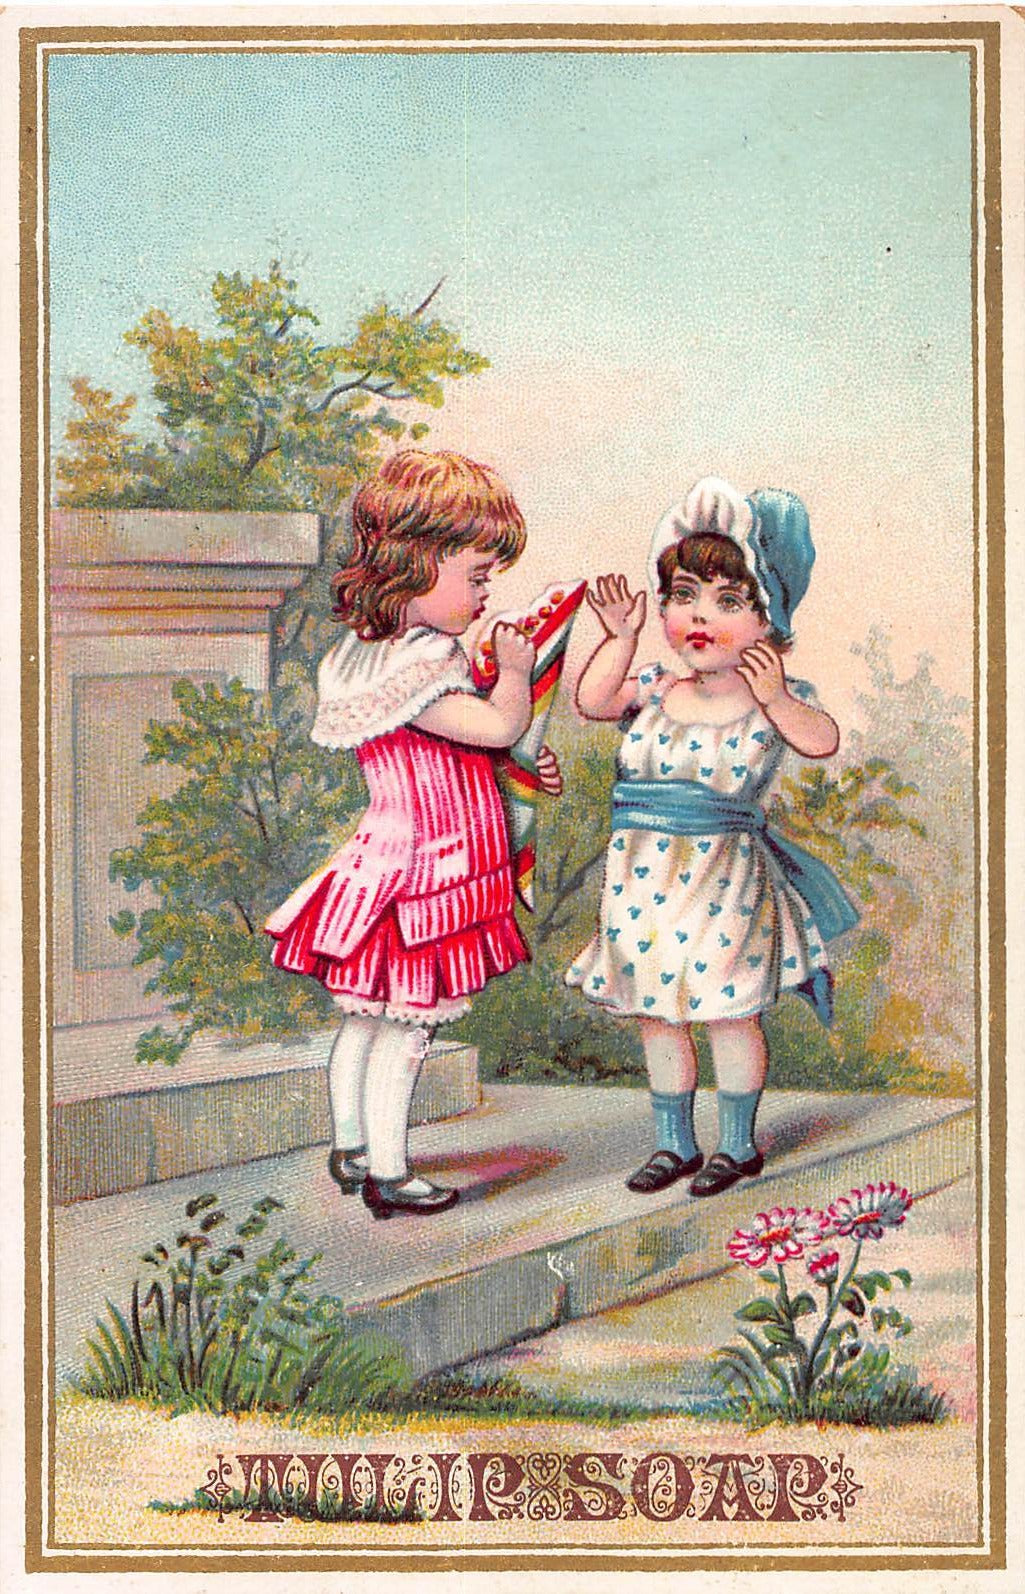 Tulip Soap, 19th Century Embossed Trade Card, Size:  133 mm. x 88 mm.